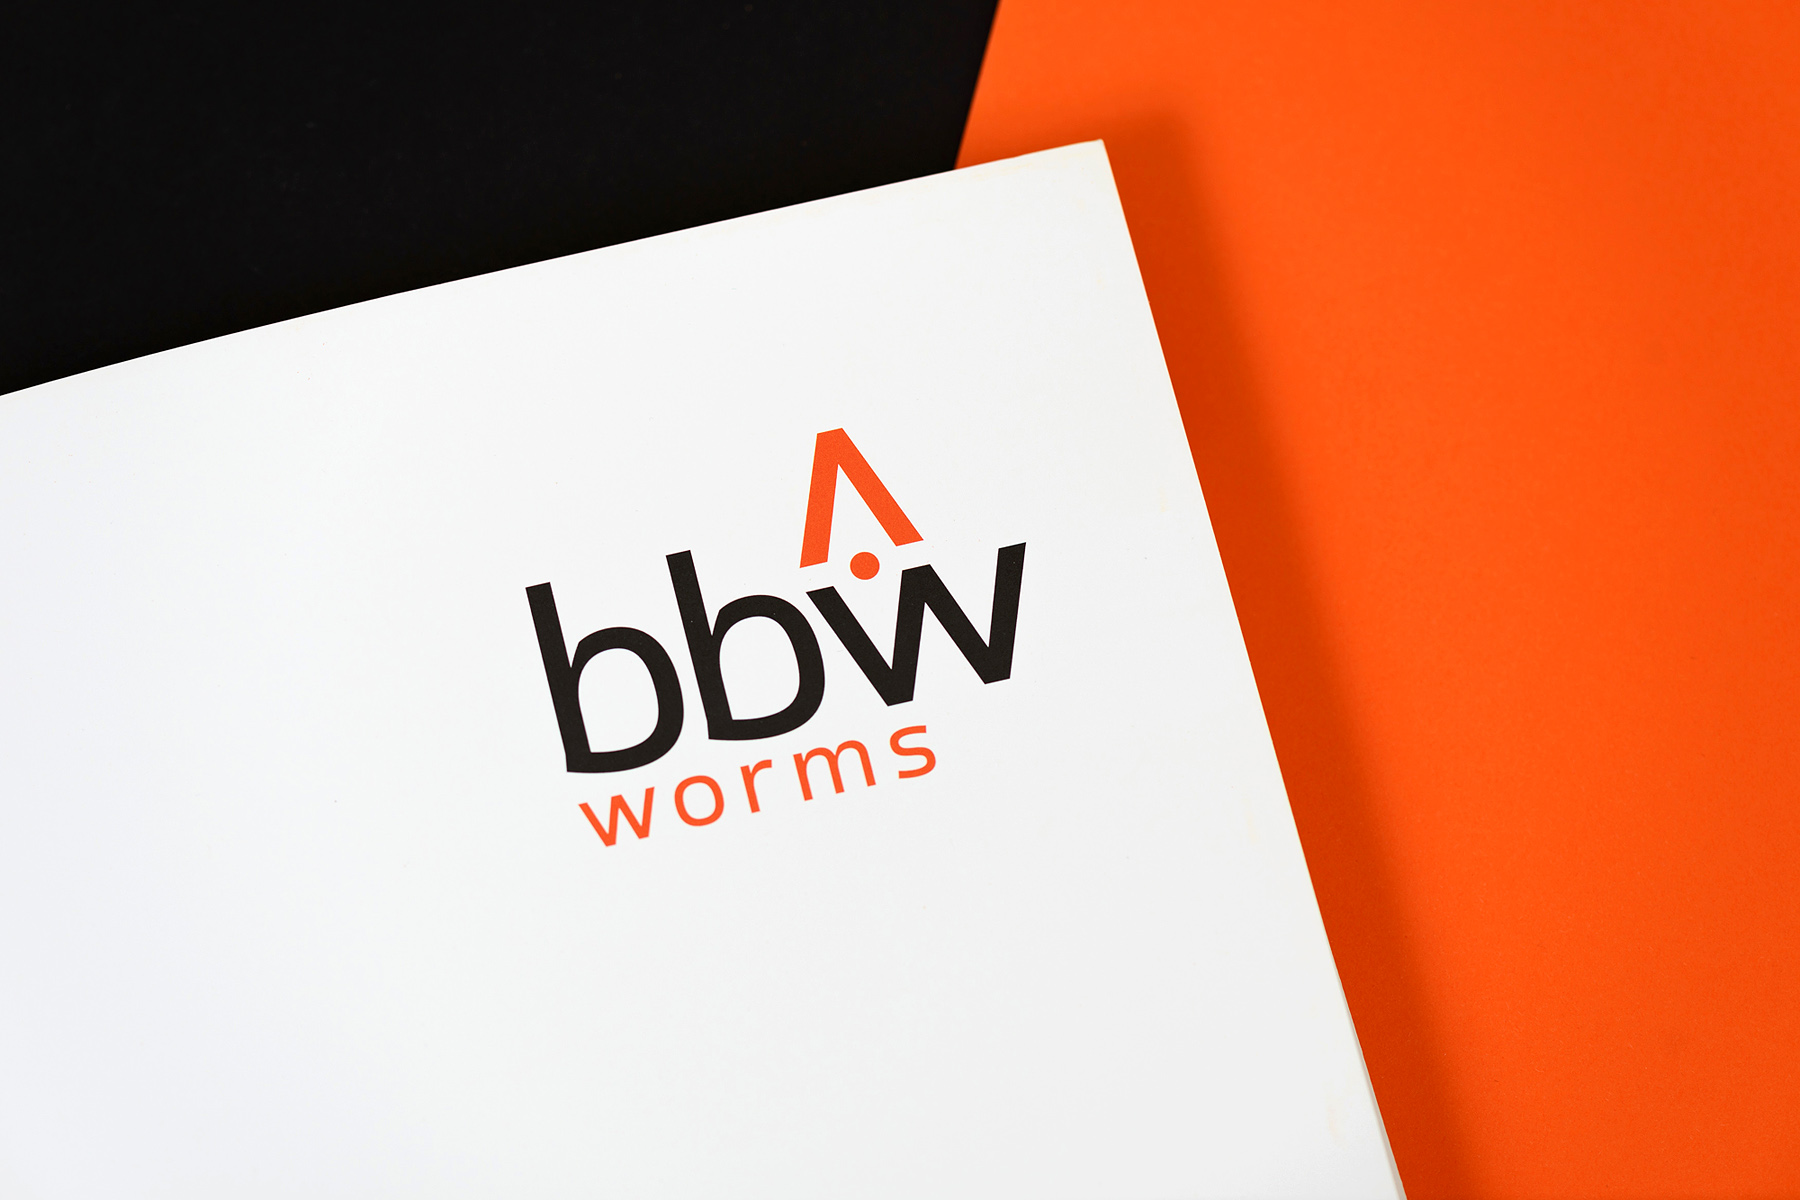 BBW Worms :: Stockhorn Werbeagentur